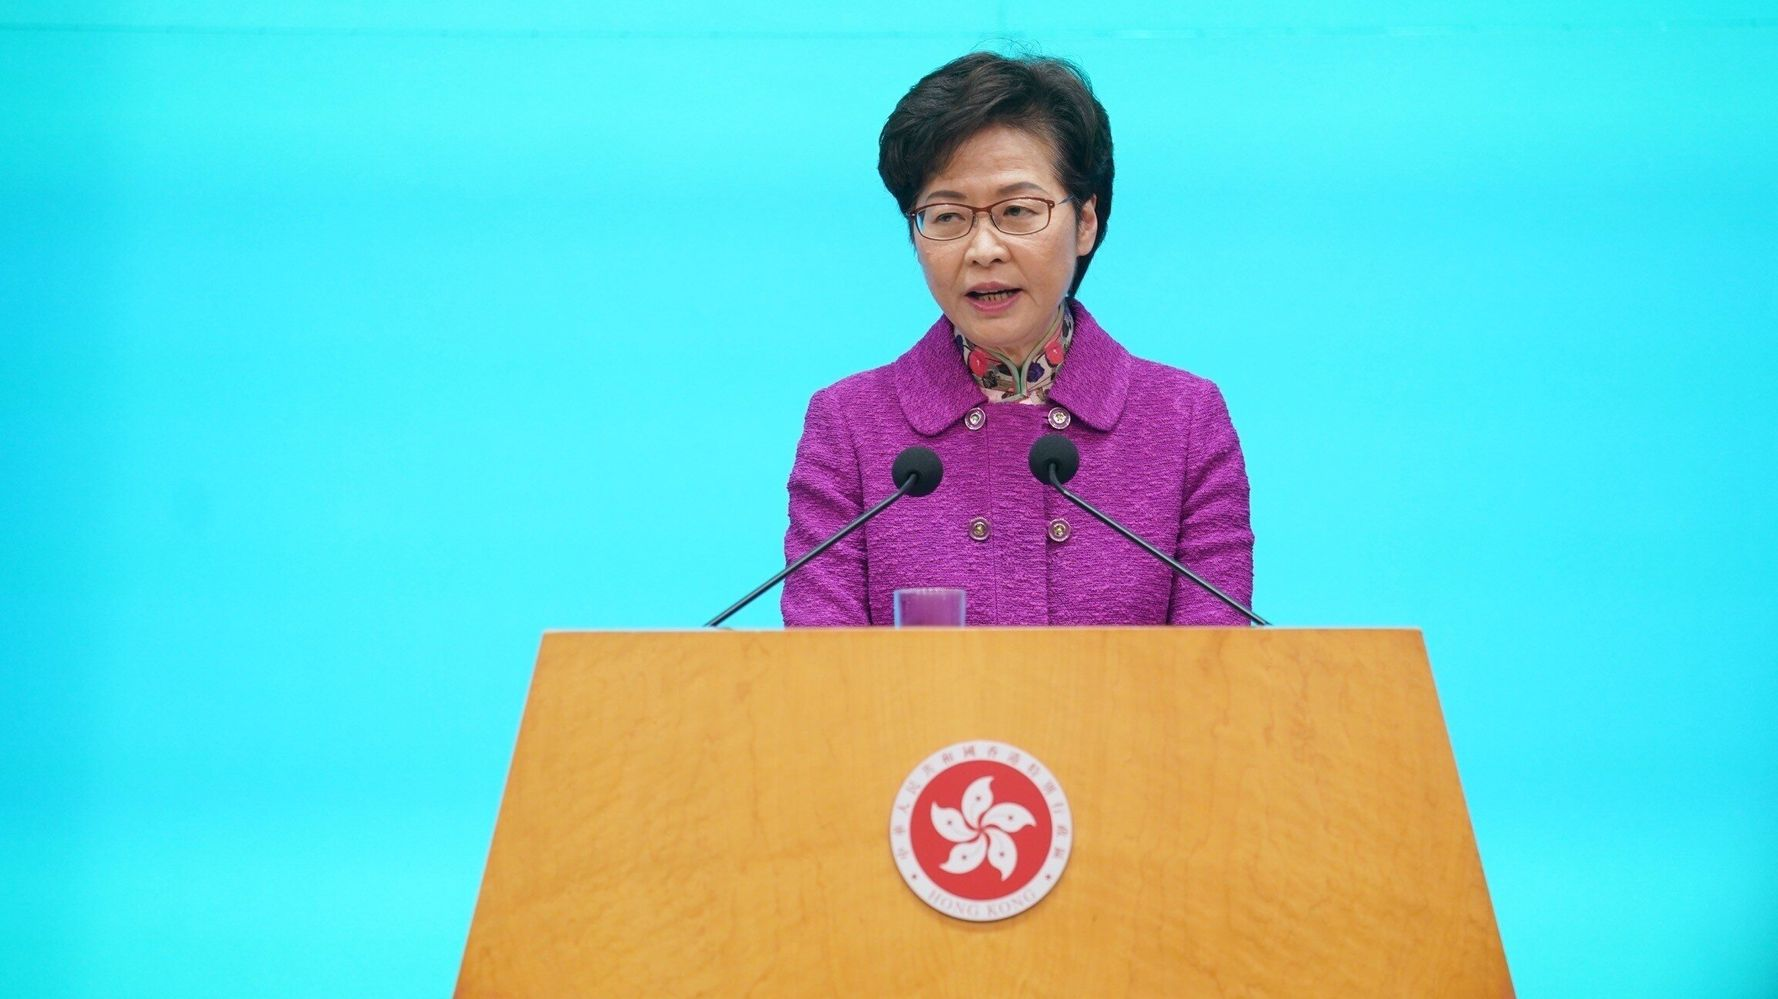 Hong Kong's Leader Says She Relies On 'Piles Of Cash' Because Of U.S. Sanctions